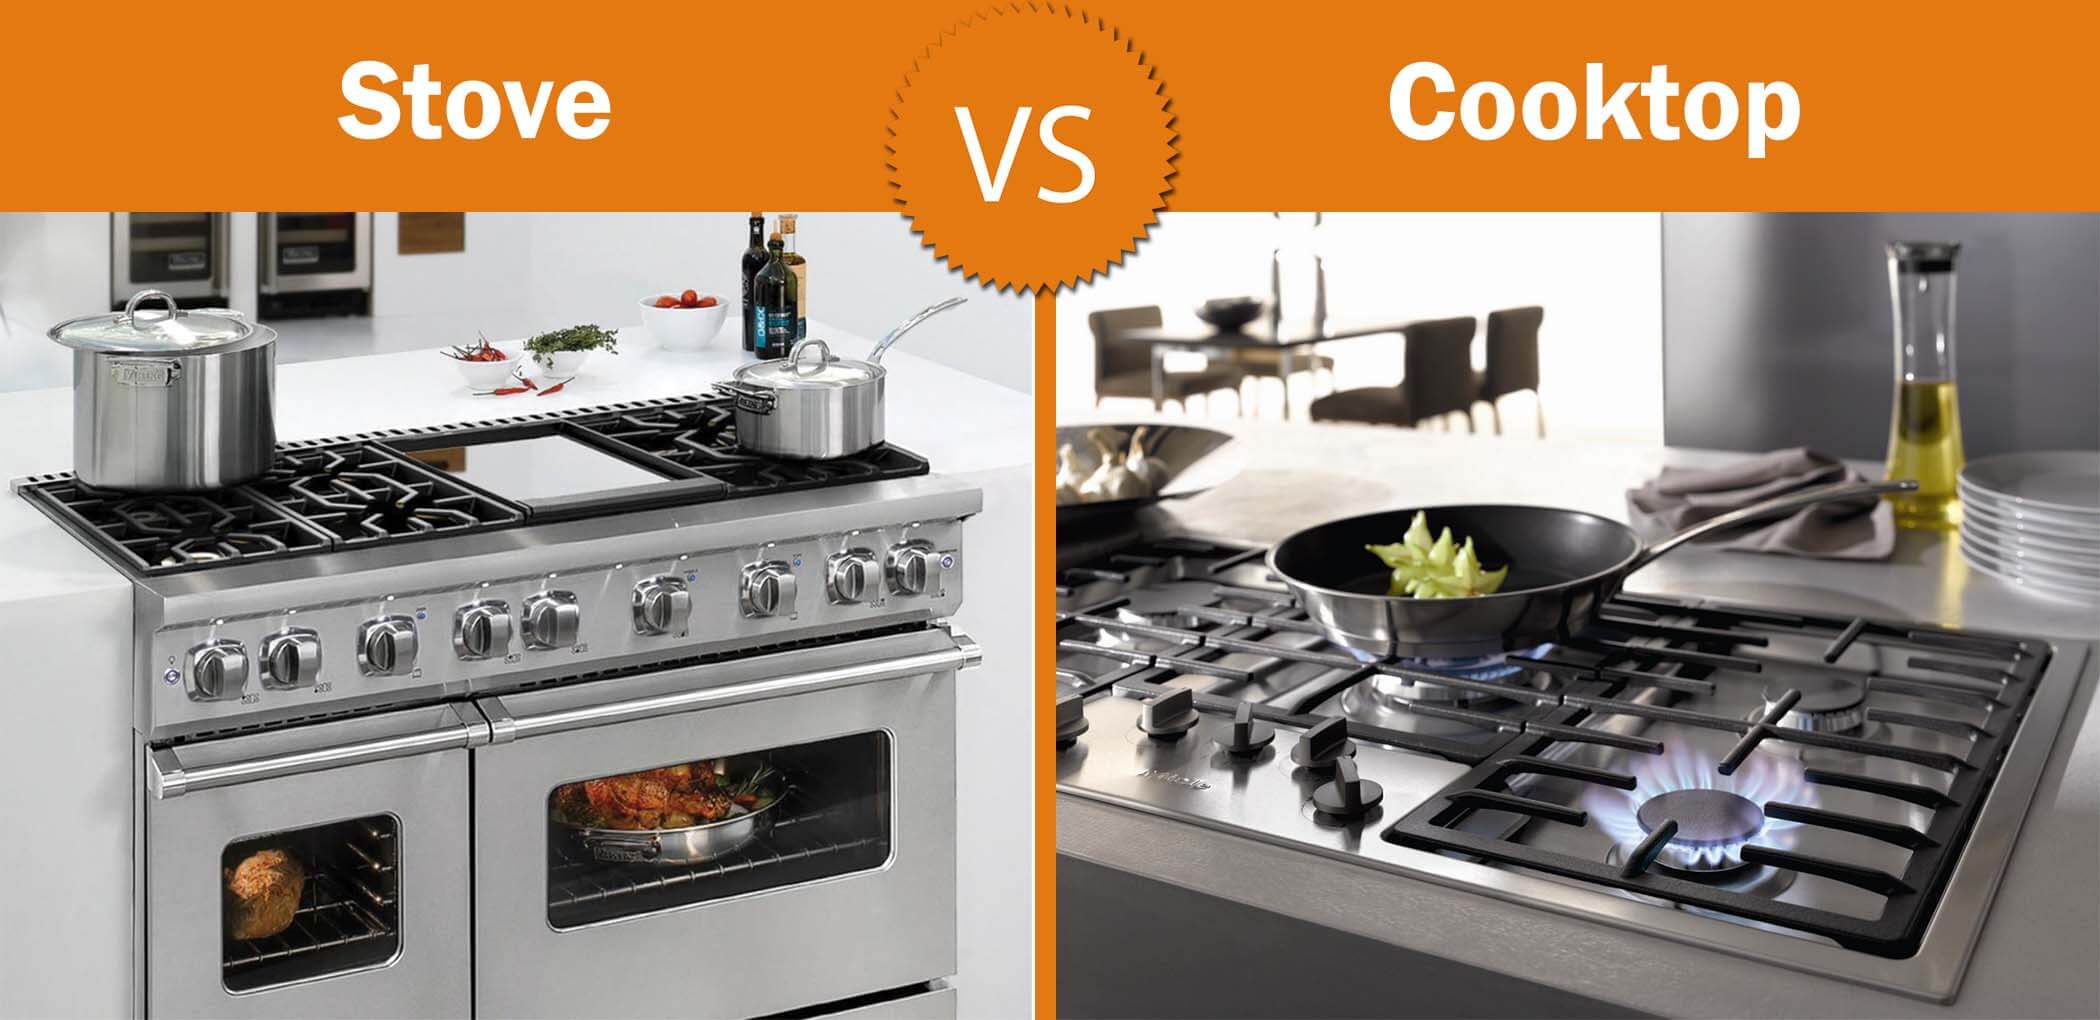 What to choose: a stove or a cooktop?